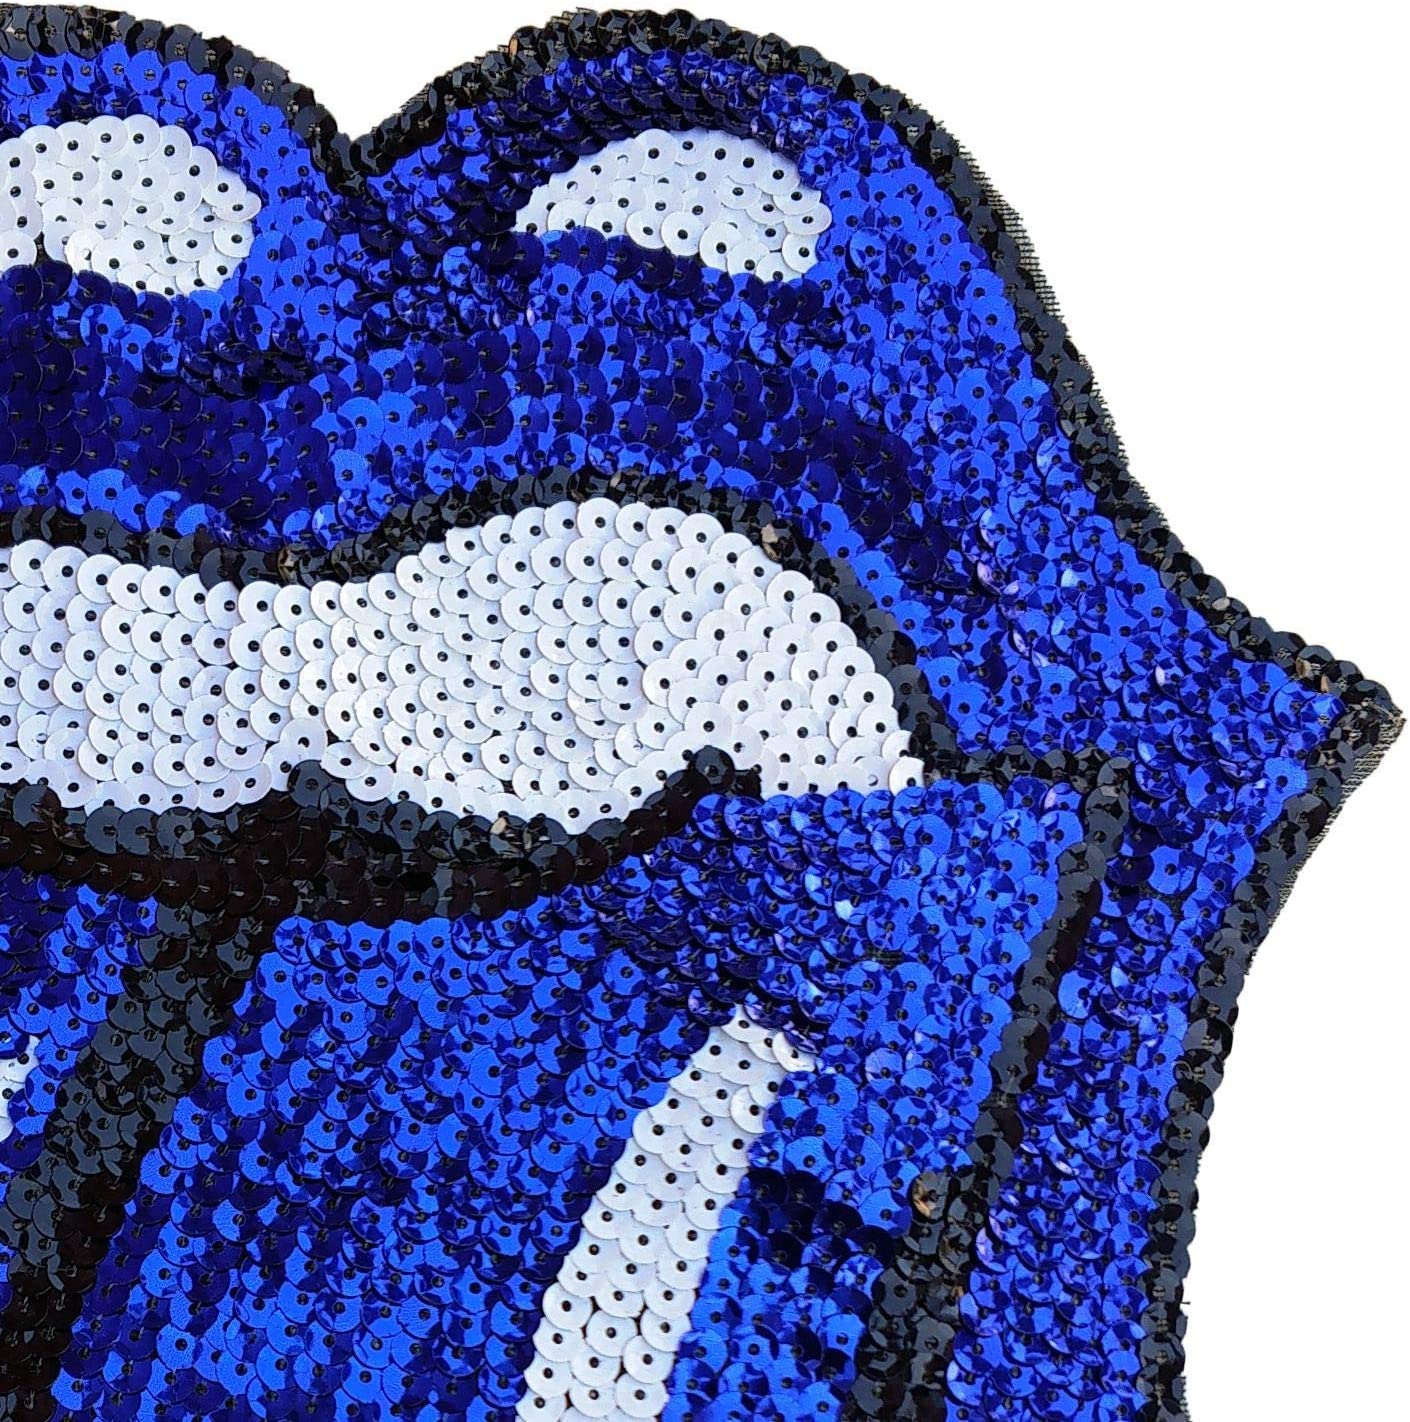 Sequin Lips Patches Sew On or Iron On Large Cartoon Mouth Tongue Lip Sequin Patches DIY Appliques Craft Compatible Hoodies T-Shirt Jeans Jackets